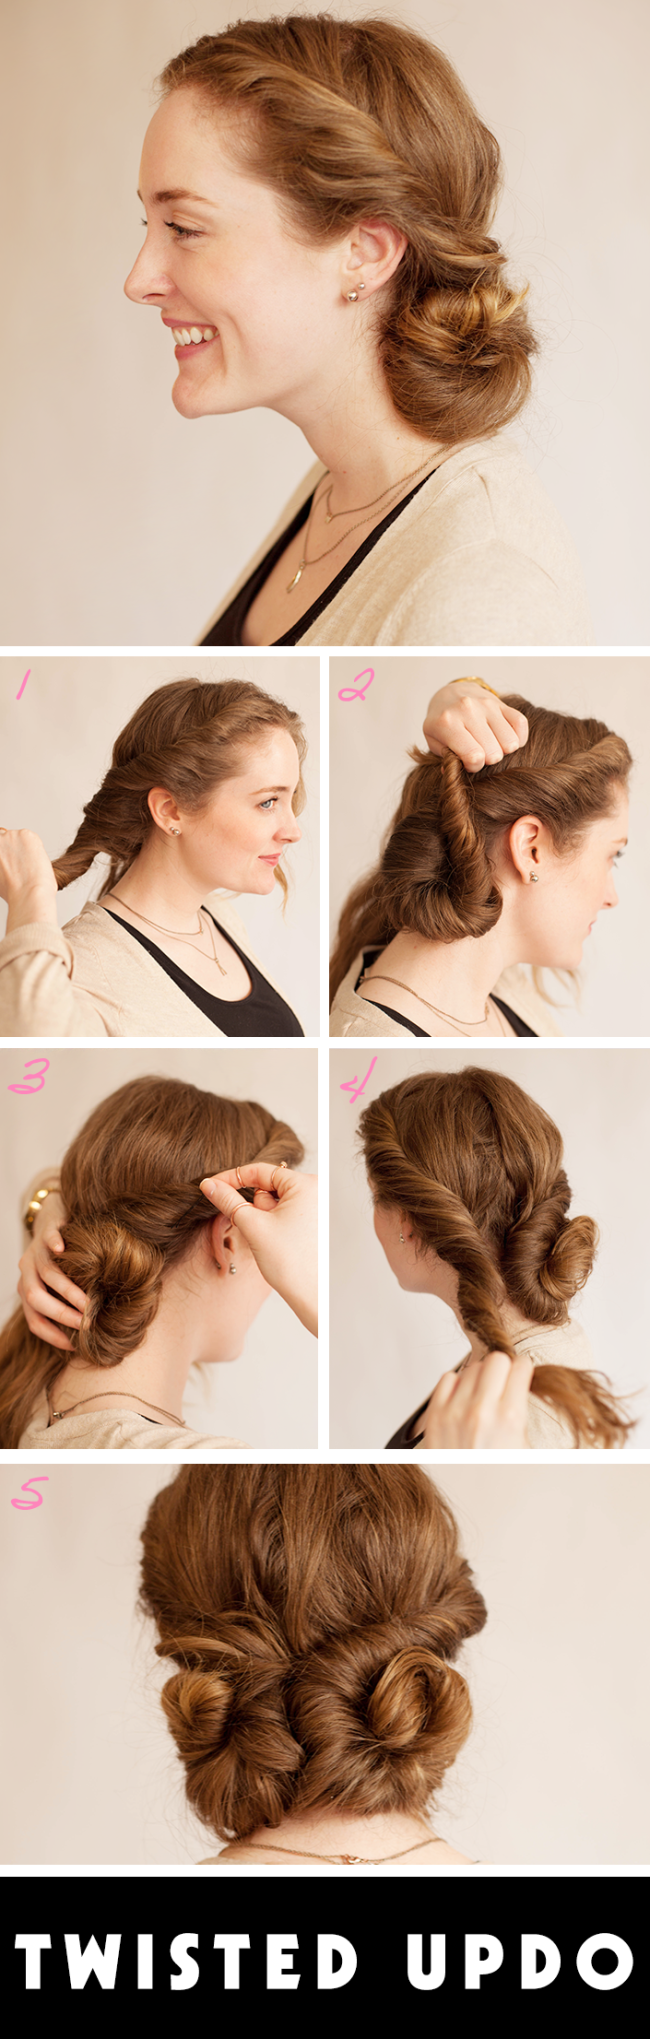 prom-hair_twisted-updo